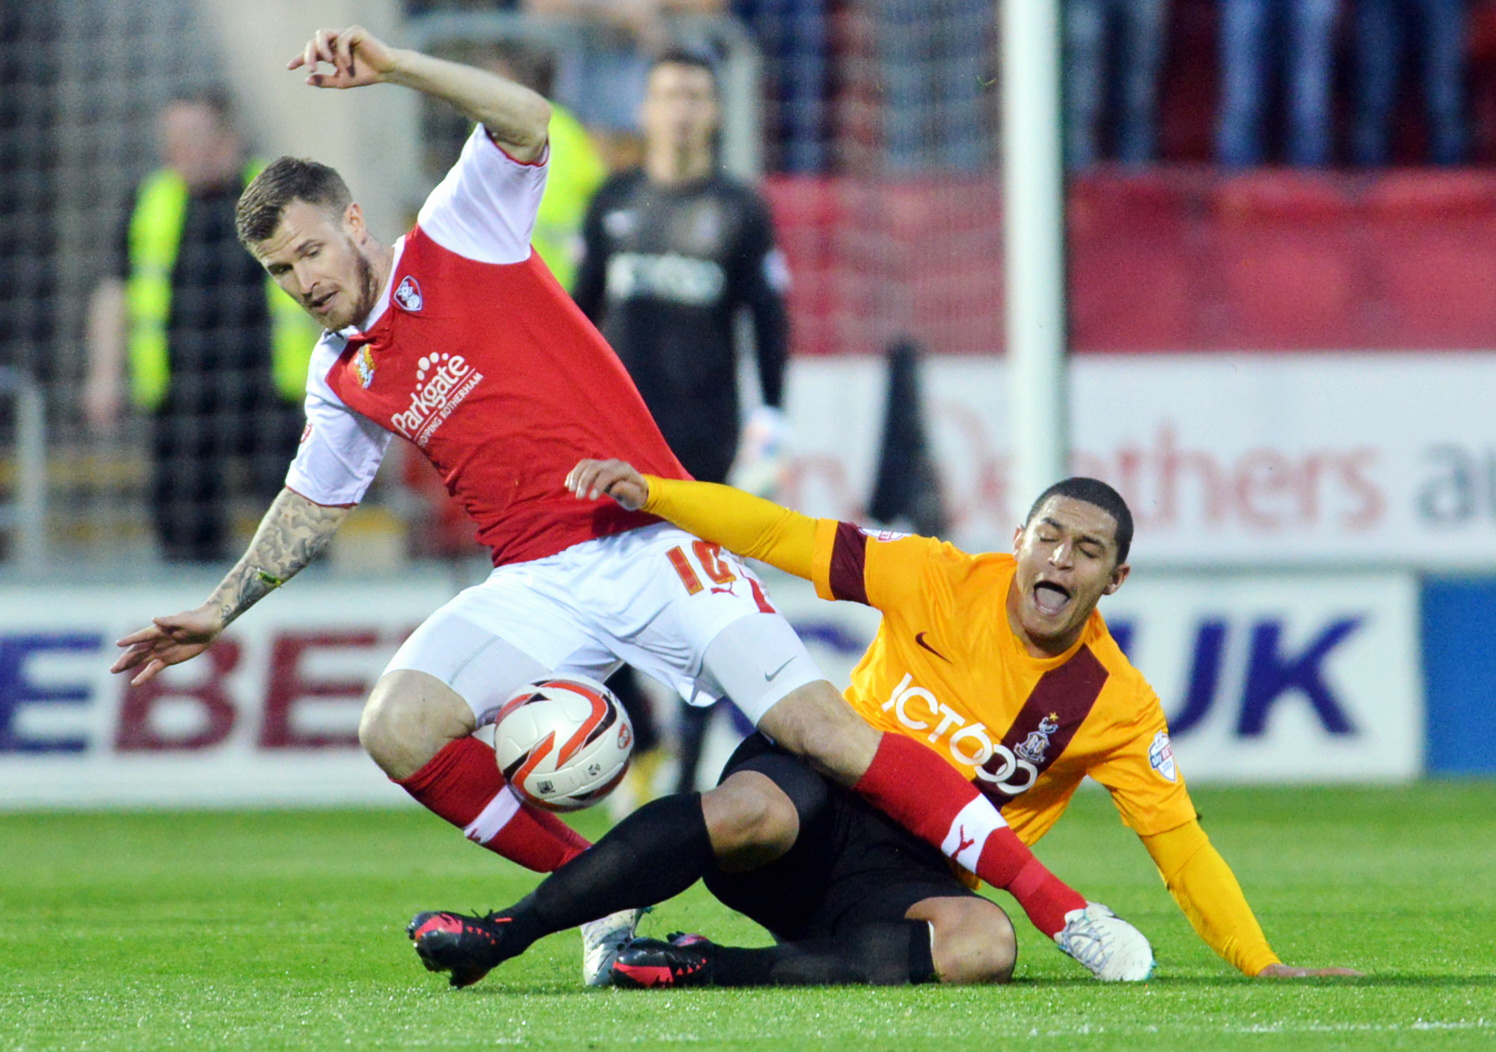 Nathan Doyle reacts to a strong tackle by Michael O'Connor of Rotherham